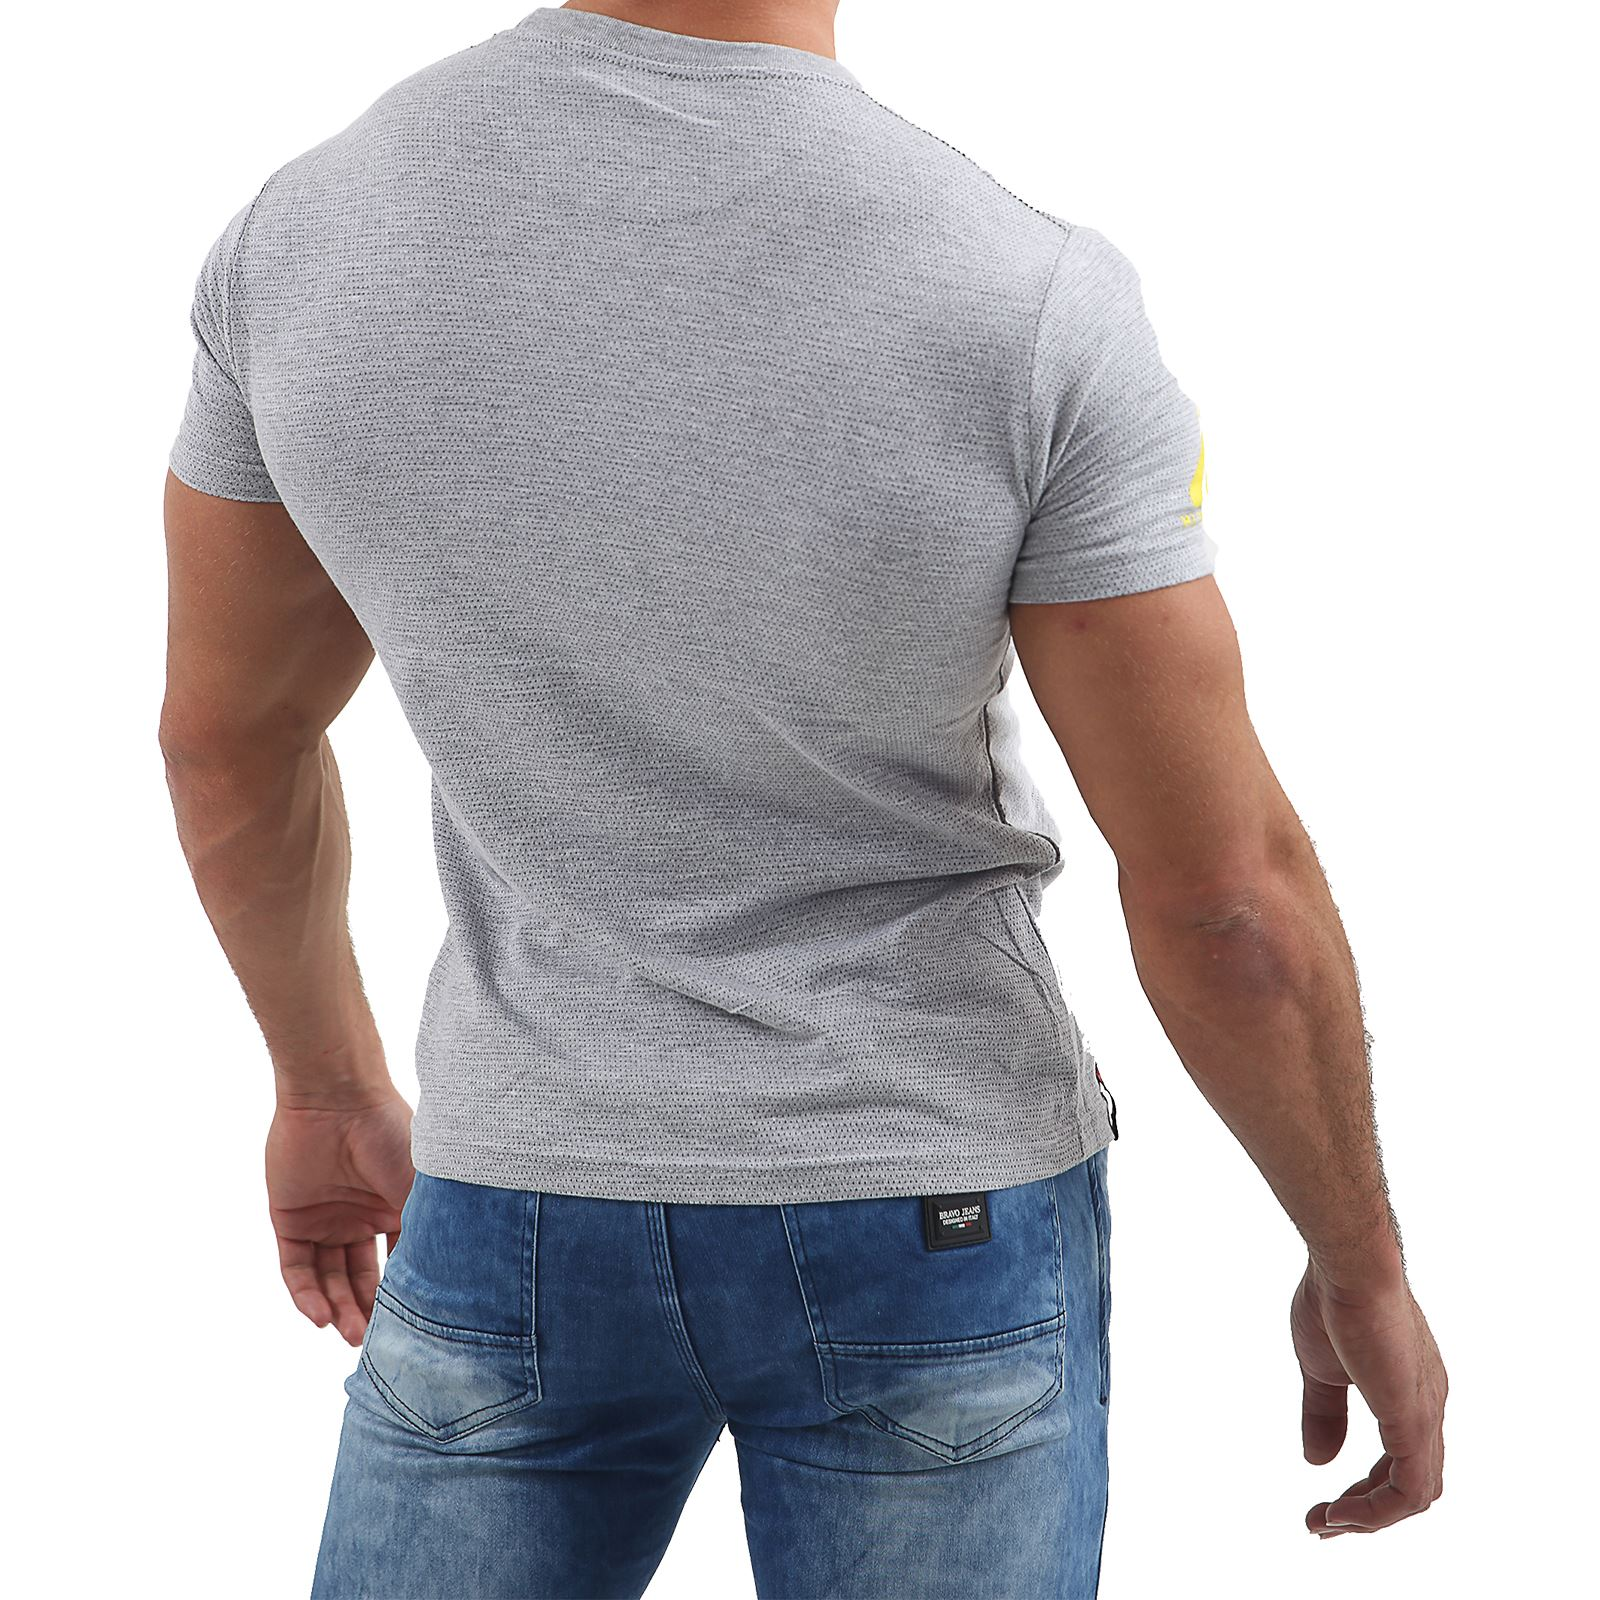 Mens-HLY-EQPT-Printed-T-Shirt-100-Cotton-Gym-Athletic-Training-Tee-Top-Summer thumbnail 30